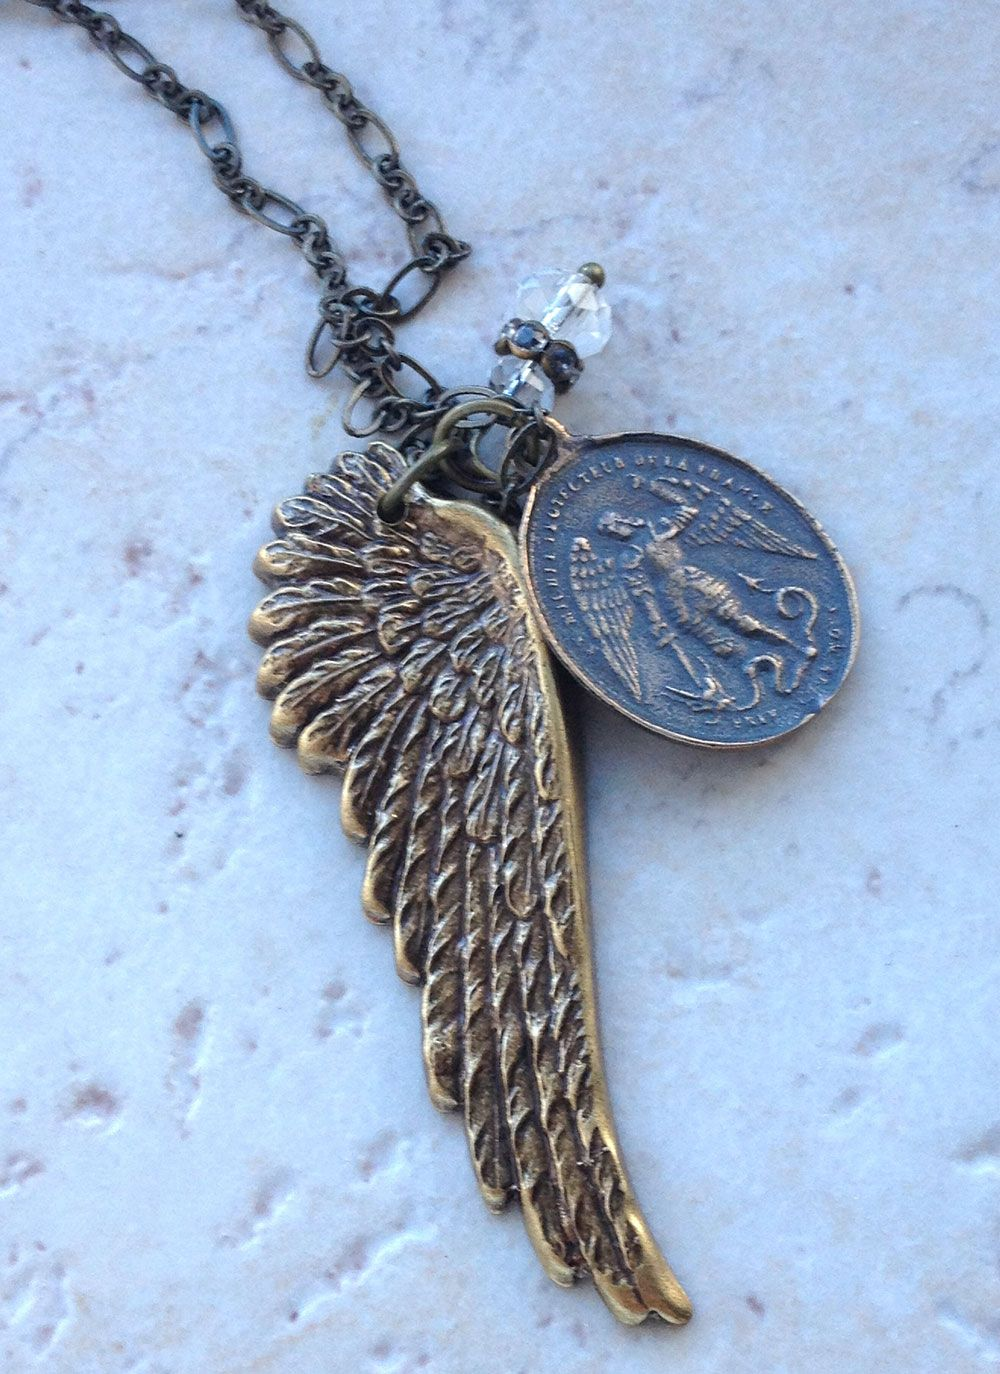 The st michael angel wing necklace features a lovely detailed a detailed bronze wing dangles alongside a delicate st michael the archangel medal with a miraculous medal on the reverse faceted crystals and rondelles aloadofball Image collections